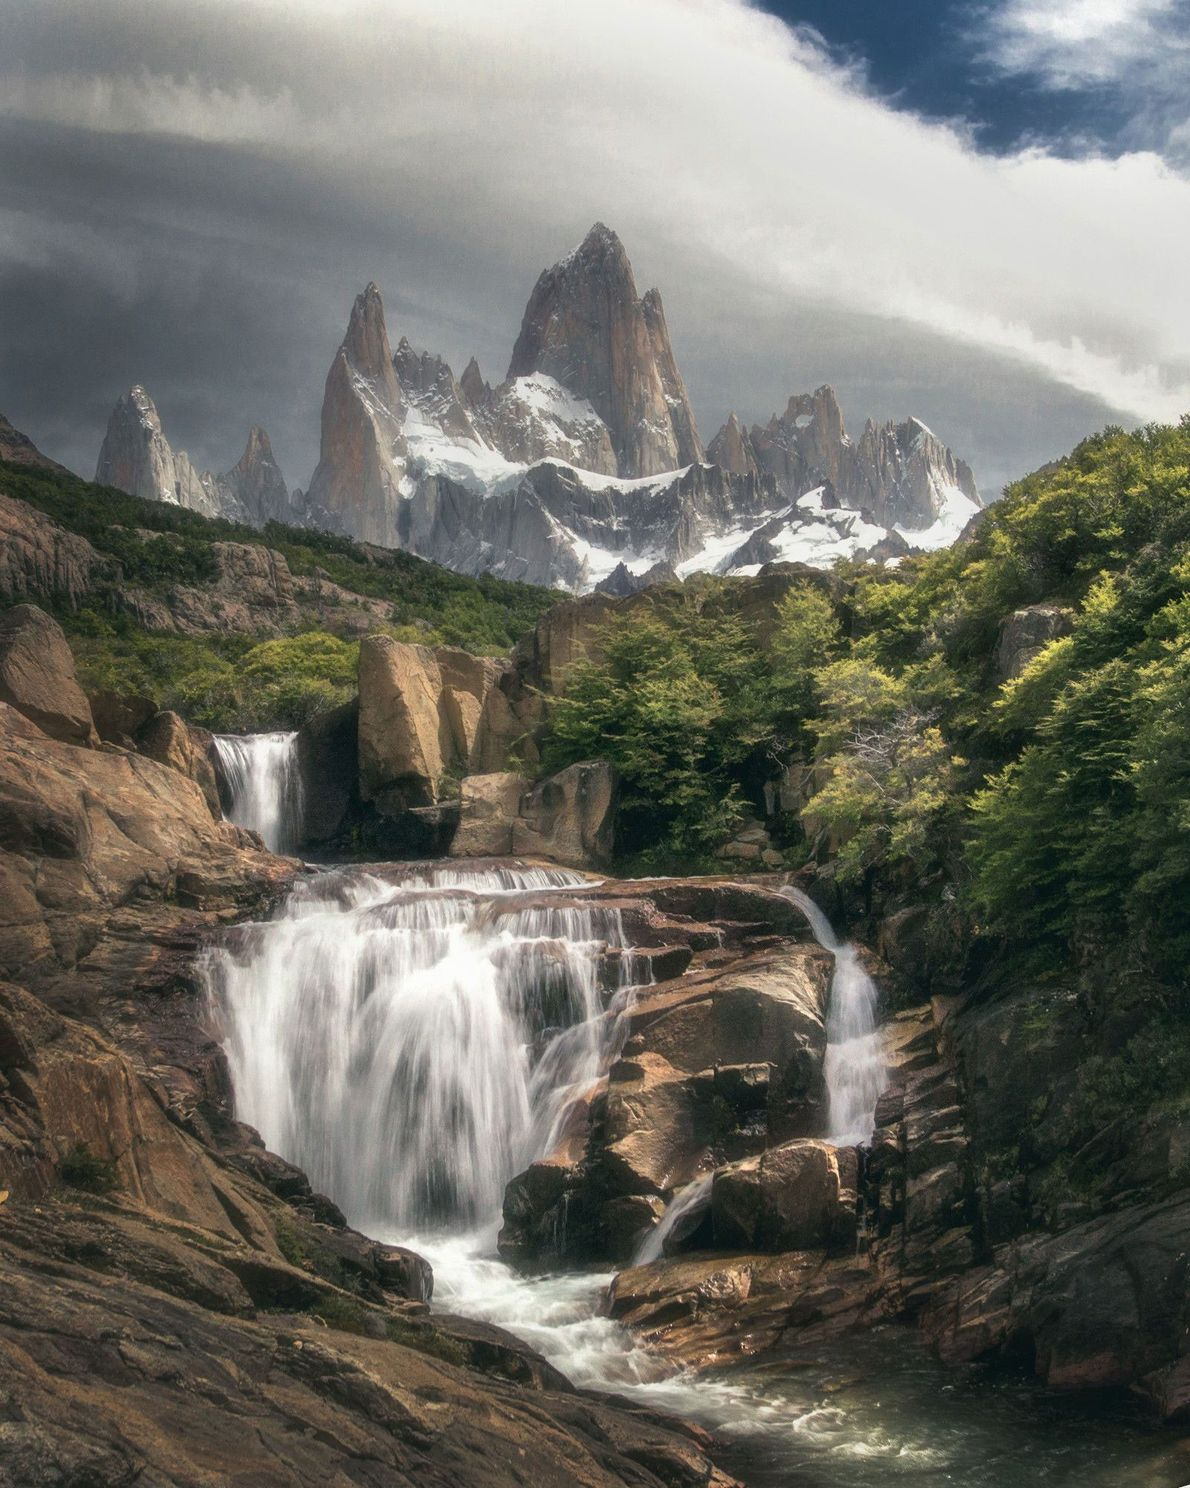 Moody weather shadows a cataract in Patagonia.